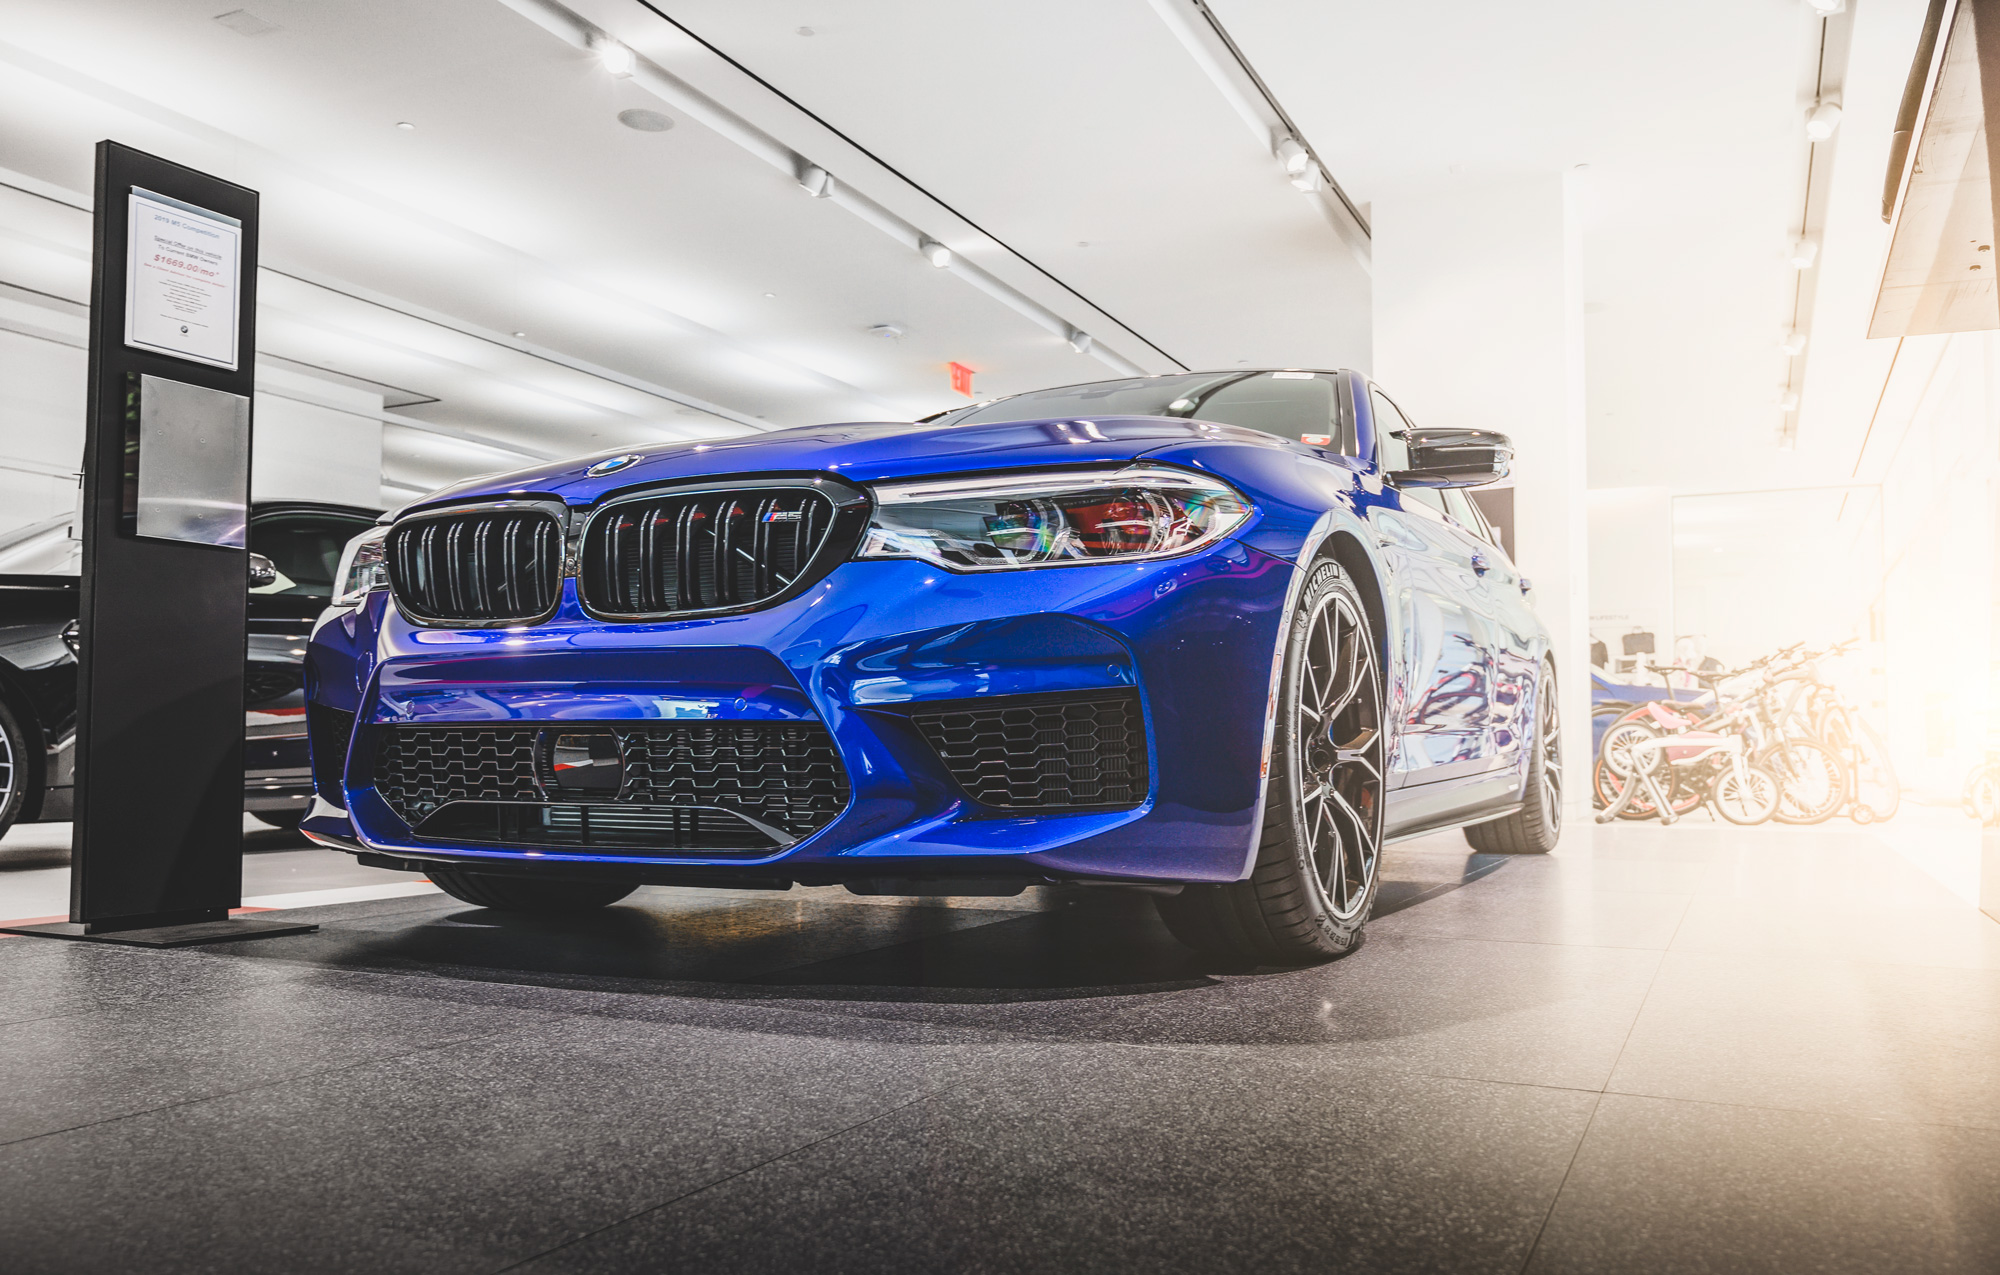 BMW F90 M5 at New York City